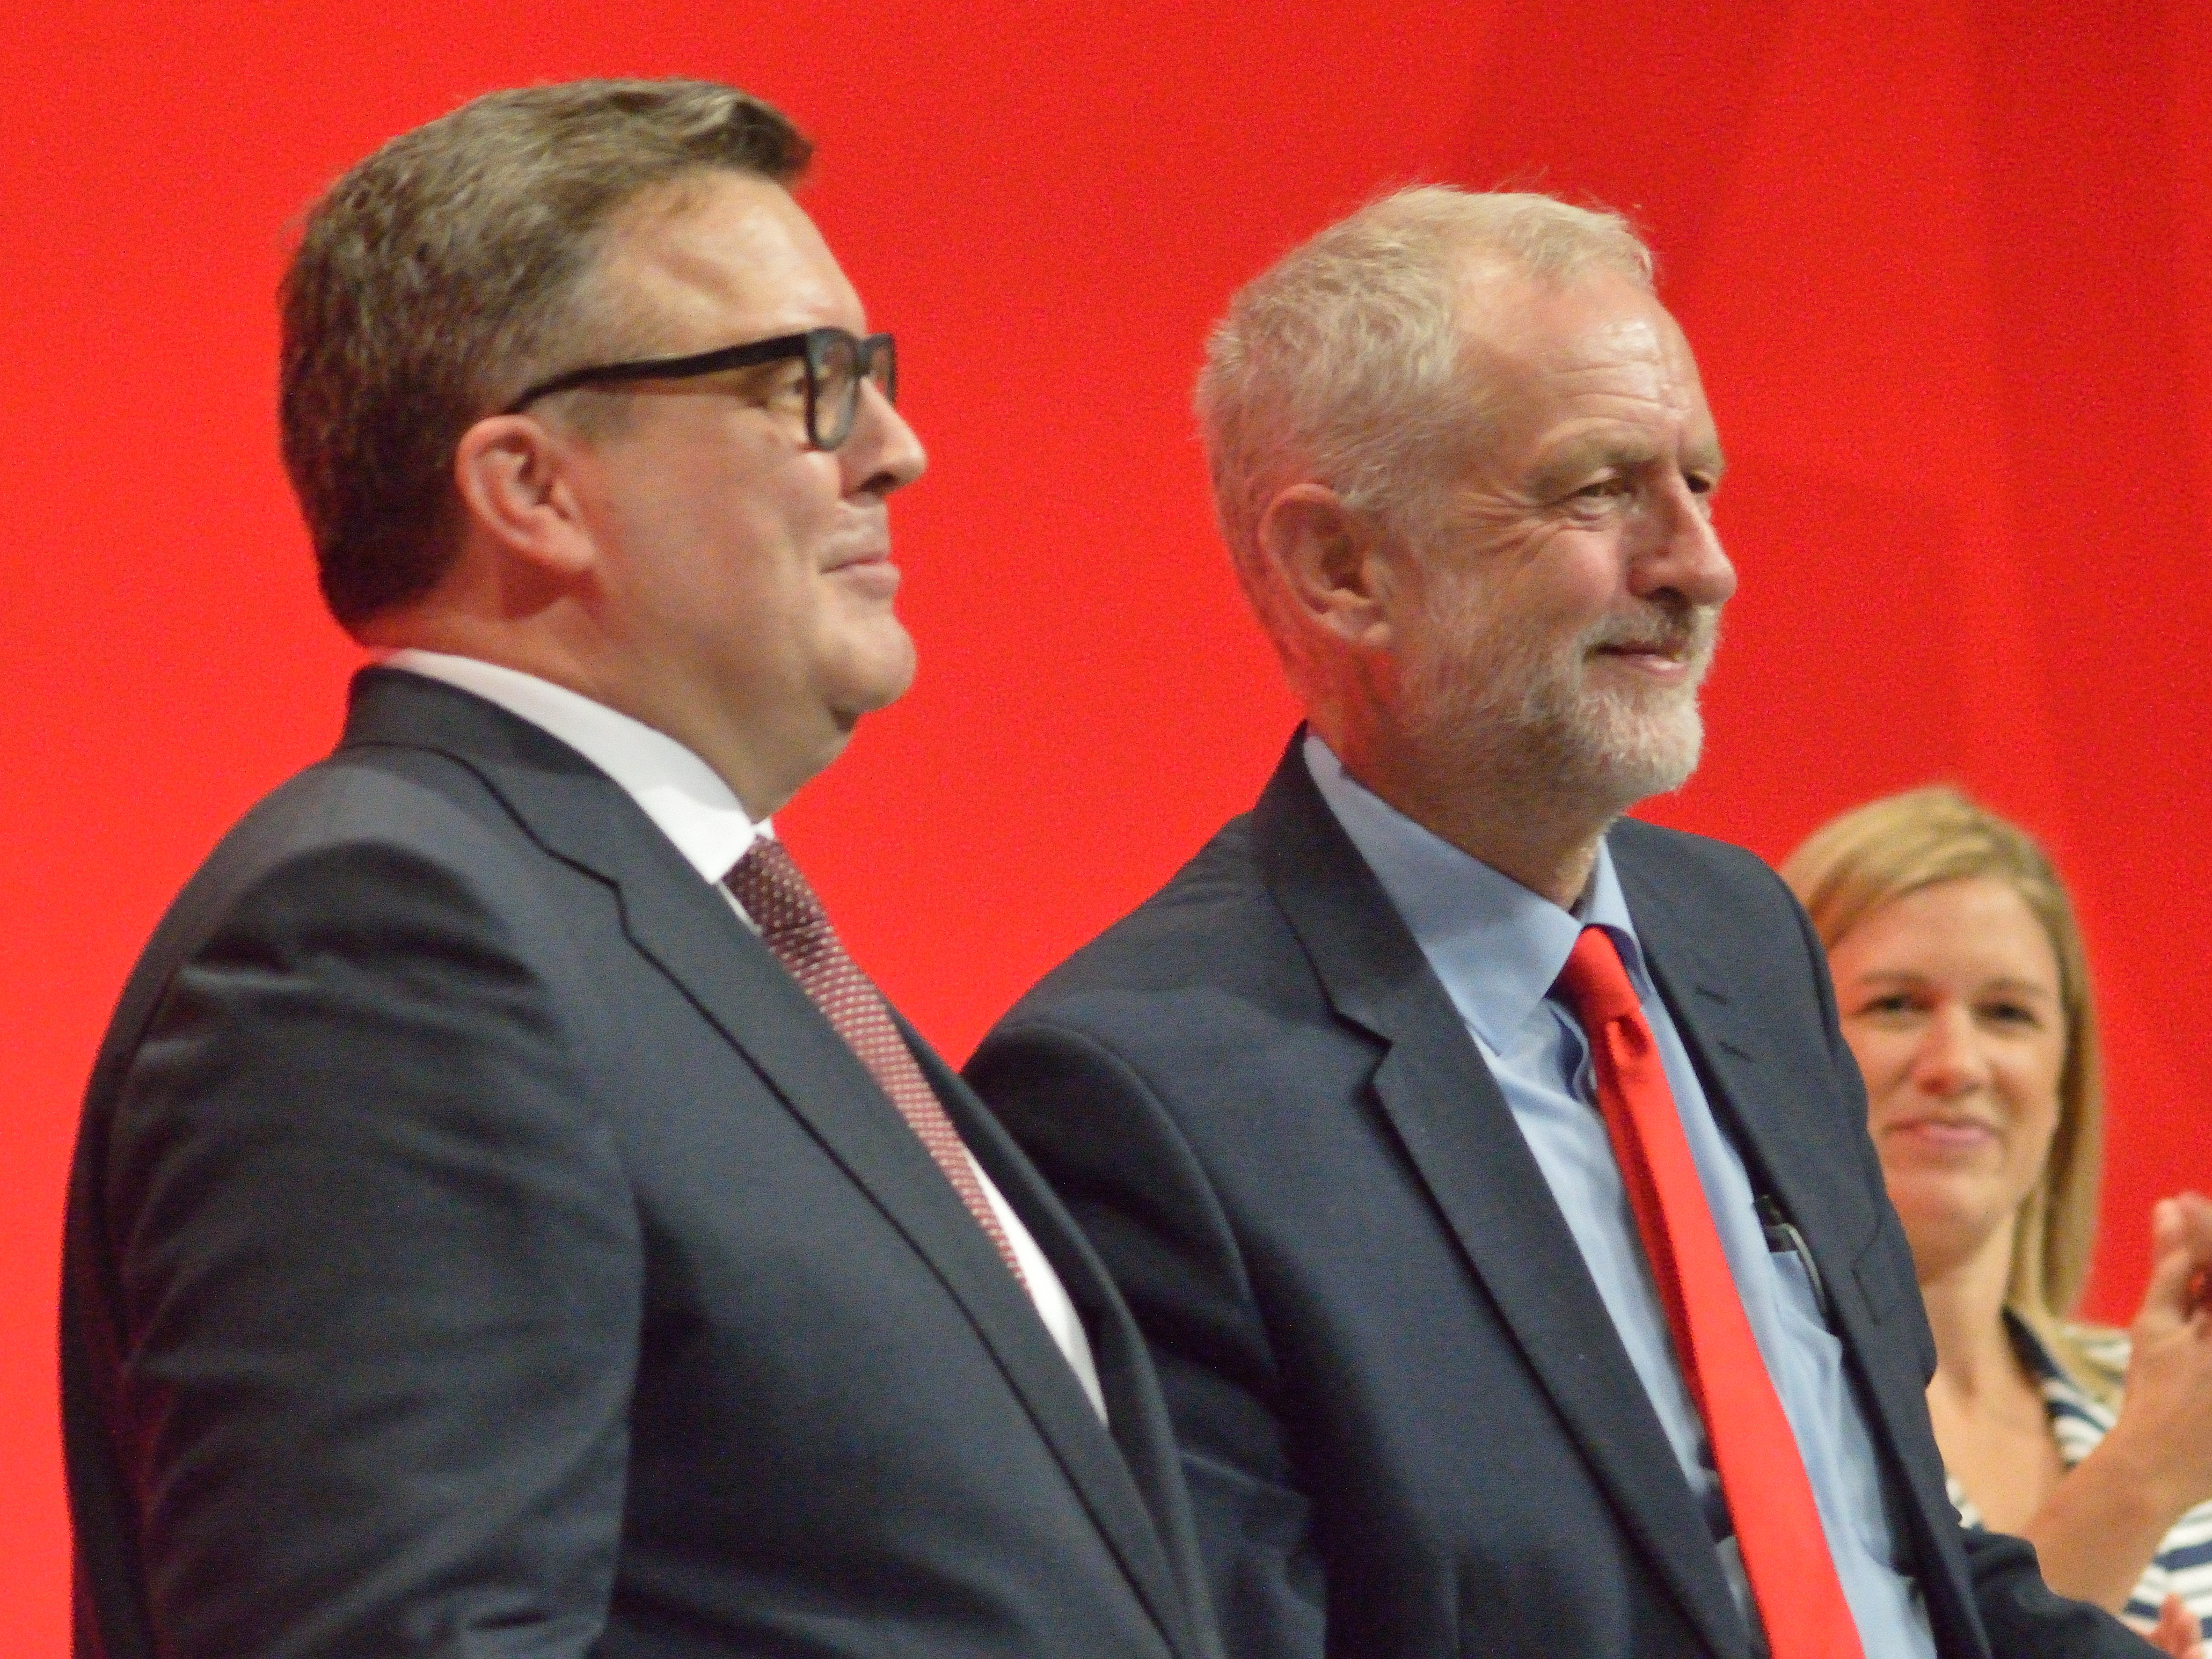 tom_watson_and_jeremy_corbyn_2016_labour_party_conference